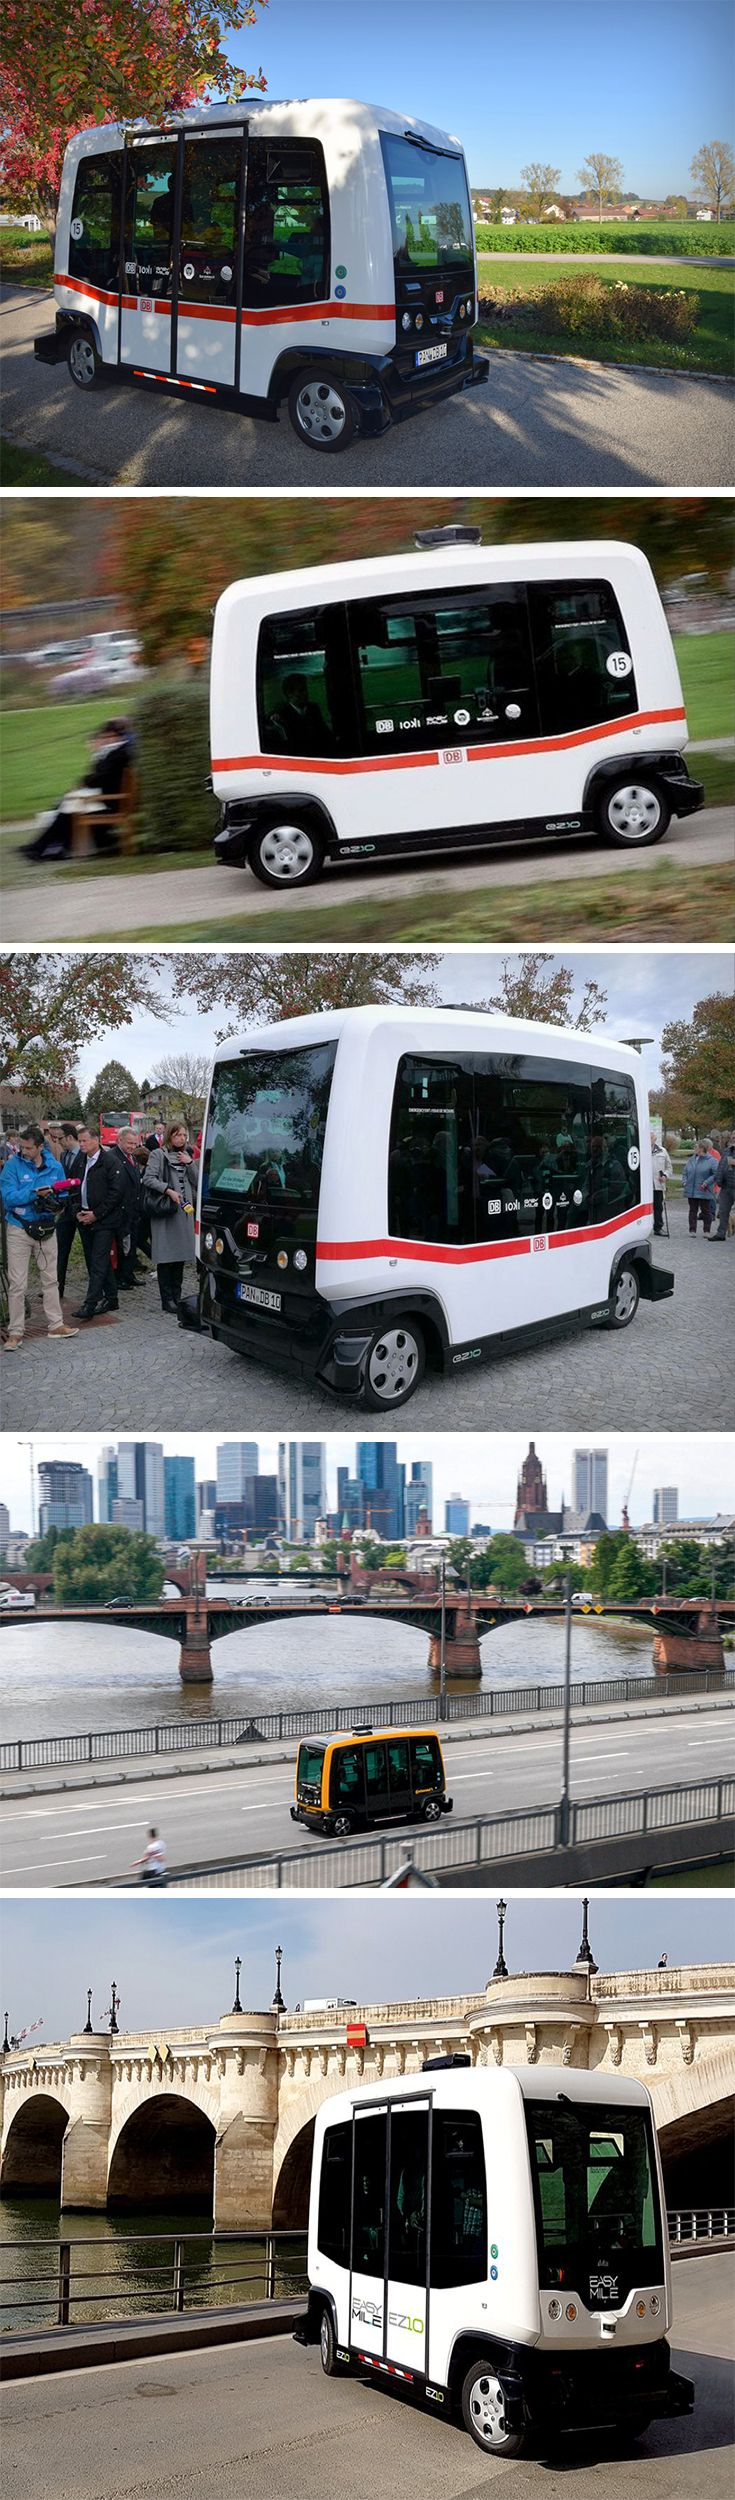 German transport company Deutsche Bahn trialed their first ever self-driving public bus. Given the task of commuting from the train station to the town center in Bavaria, EastTen traveled the 700-meter journey with ease. Designed by French company EasyMile, this autonomous vehicle is loaded with sensors, lasers, and a GPS system to help get the folks of Bavaria around safely.